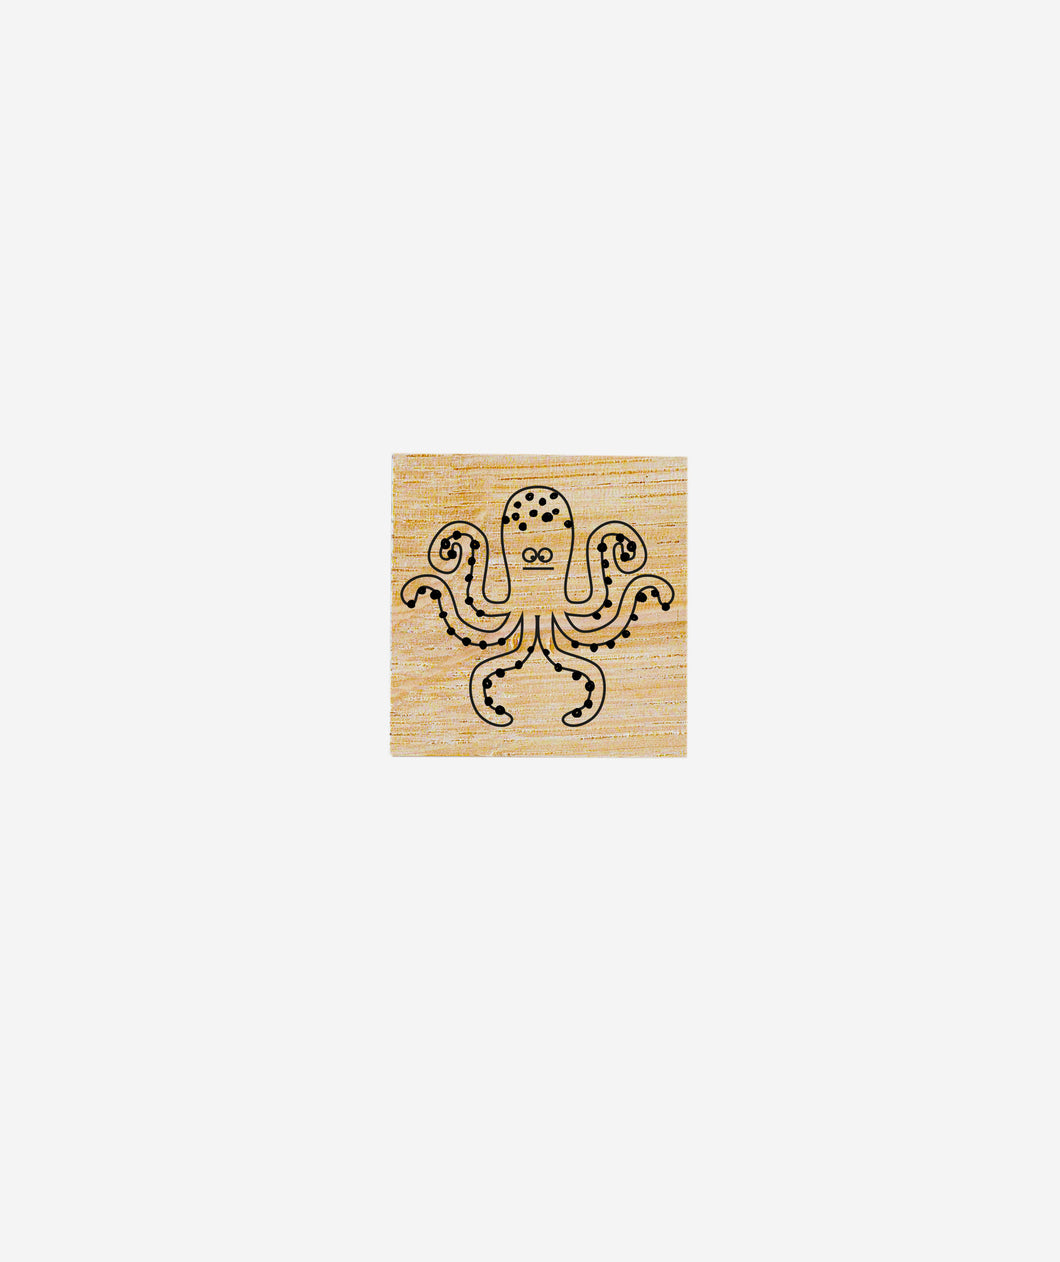 Octopus Stamp